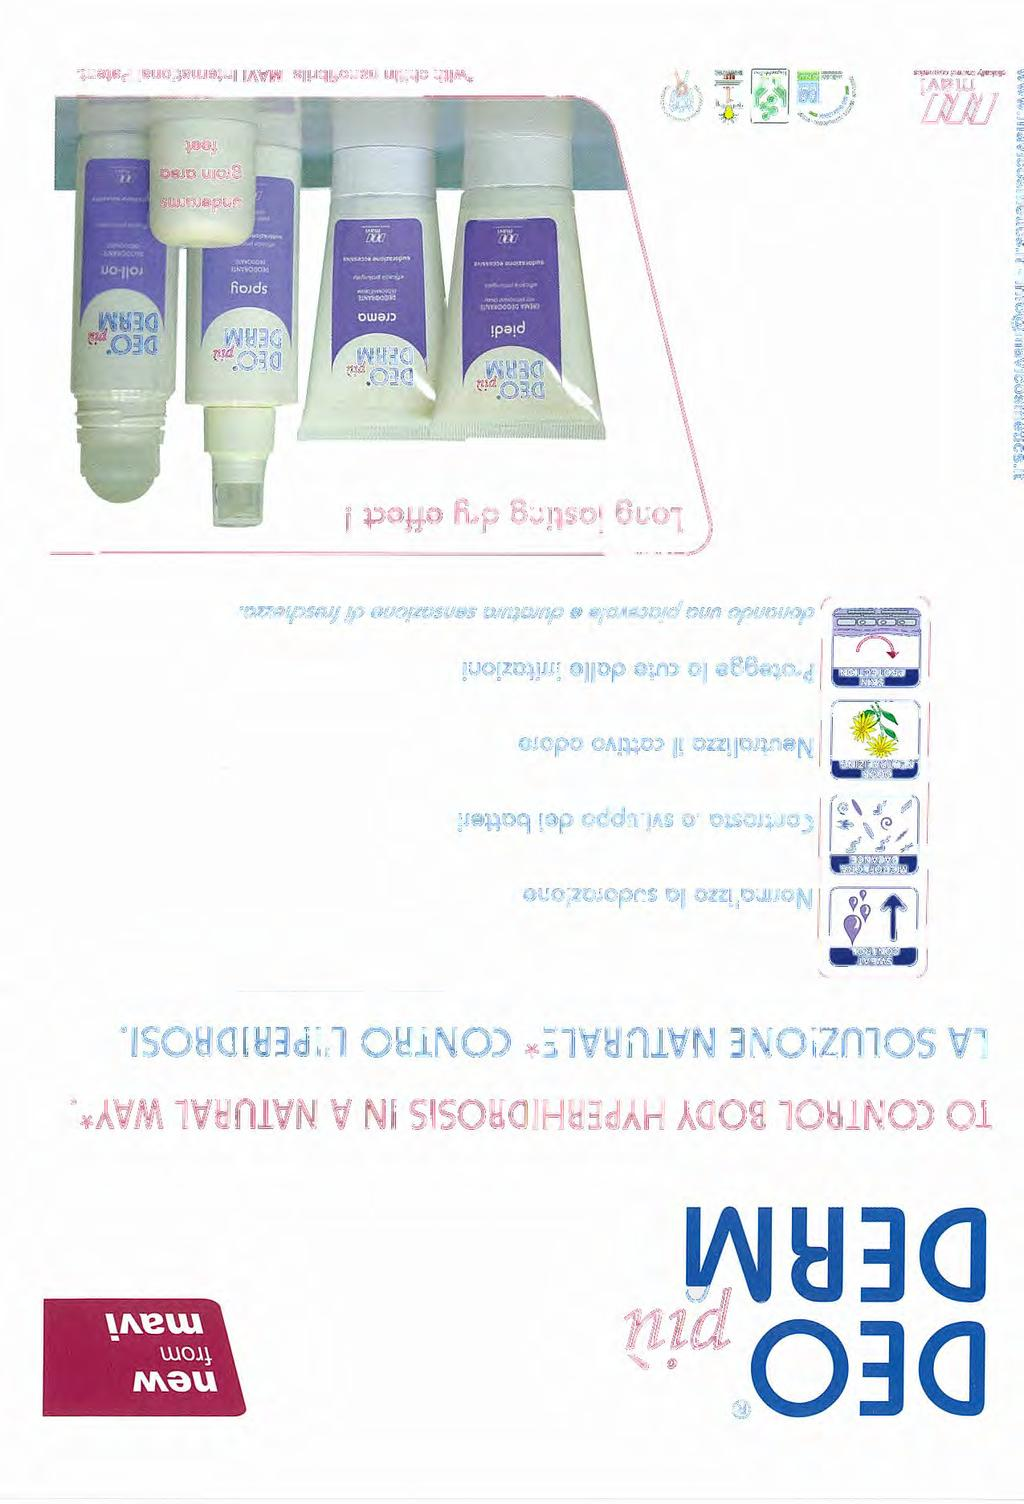 ~ ti,) ::: ) DEO P.iù DERM new 'rnm ma""\ TO CONTROL BODY HYPERHIDROSIS IN A NATURAL WAY*.1024|1504|?|3ec2a04bba53bc96075408a2de787bb3|False|UNLIKELY|0.3149086833000183